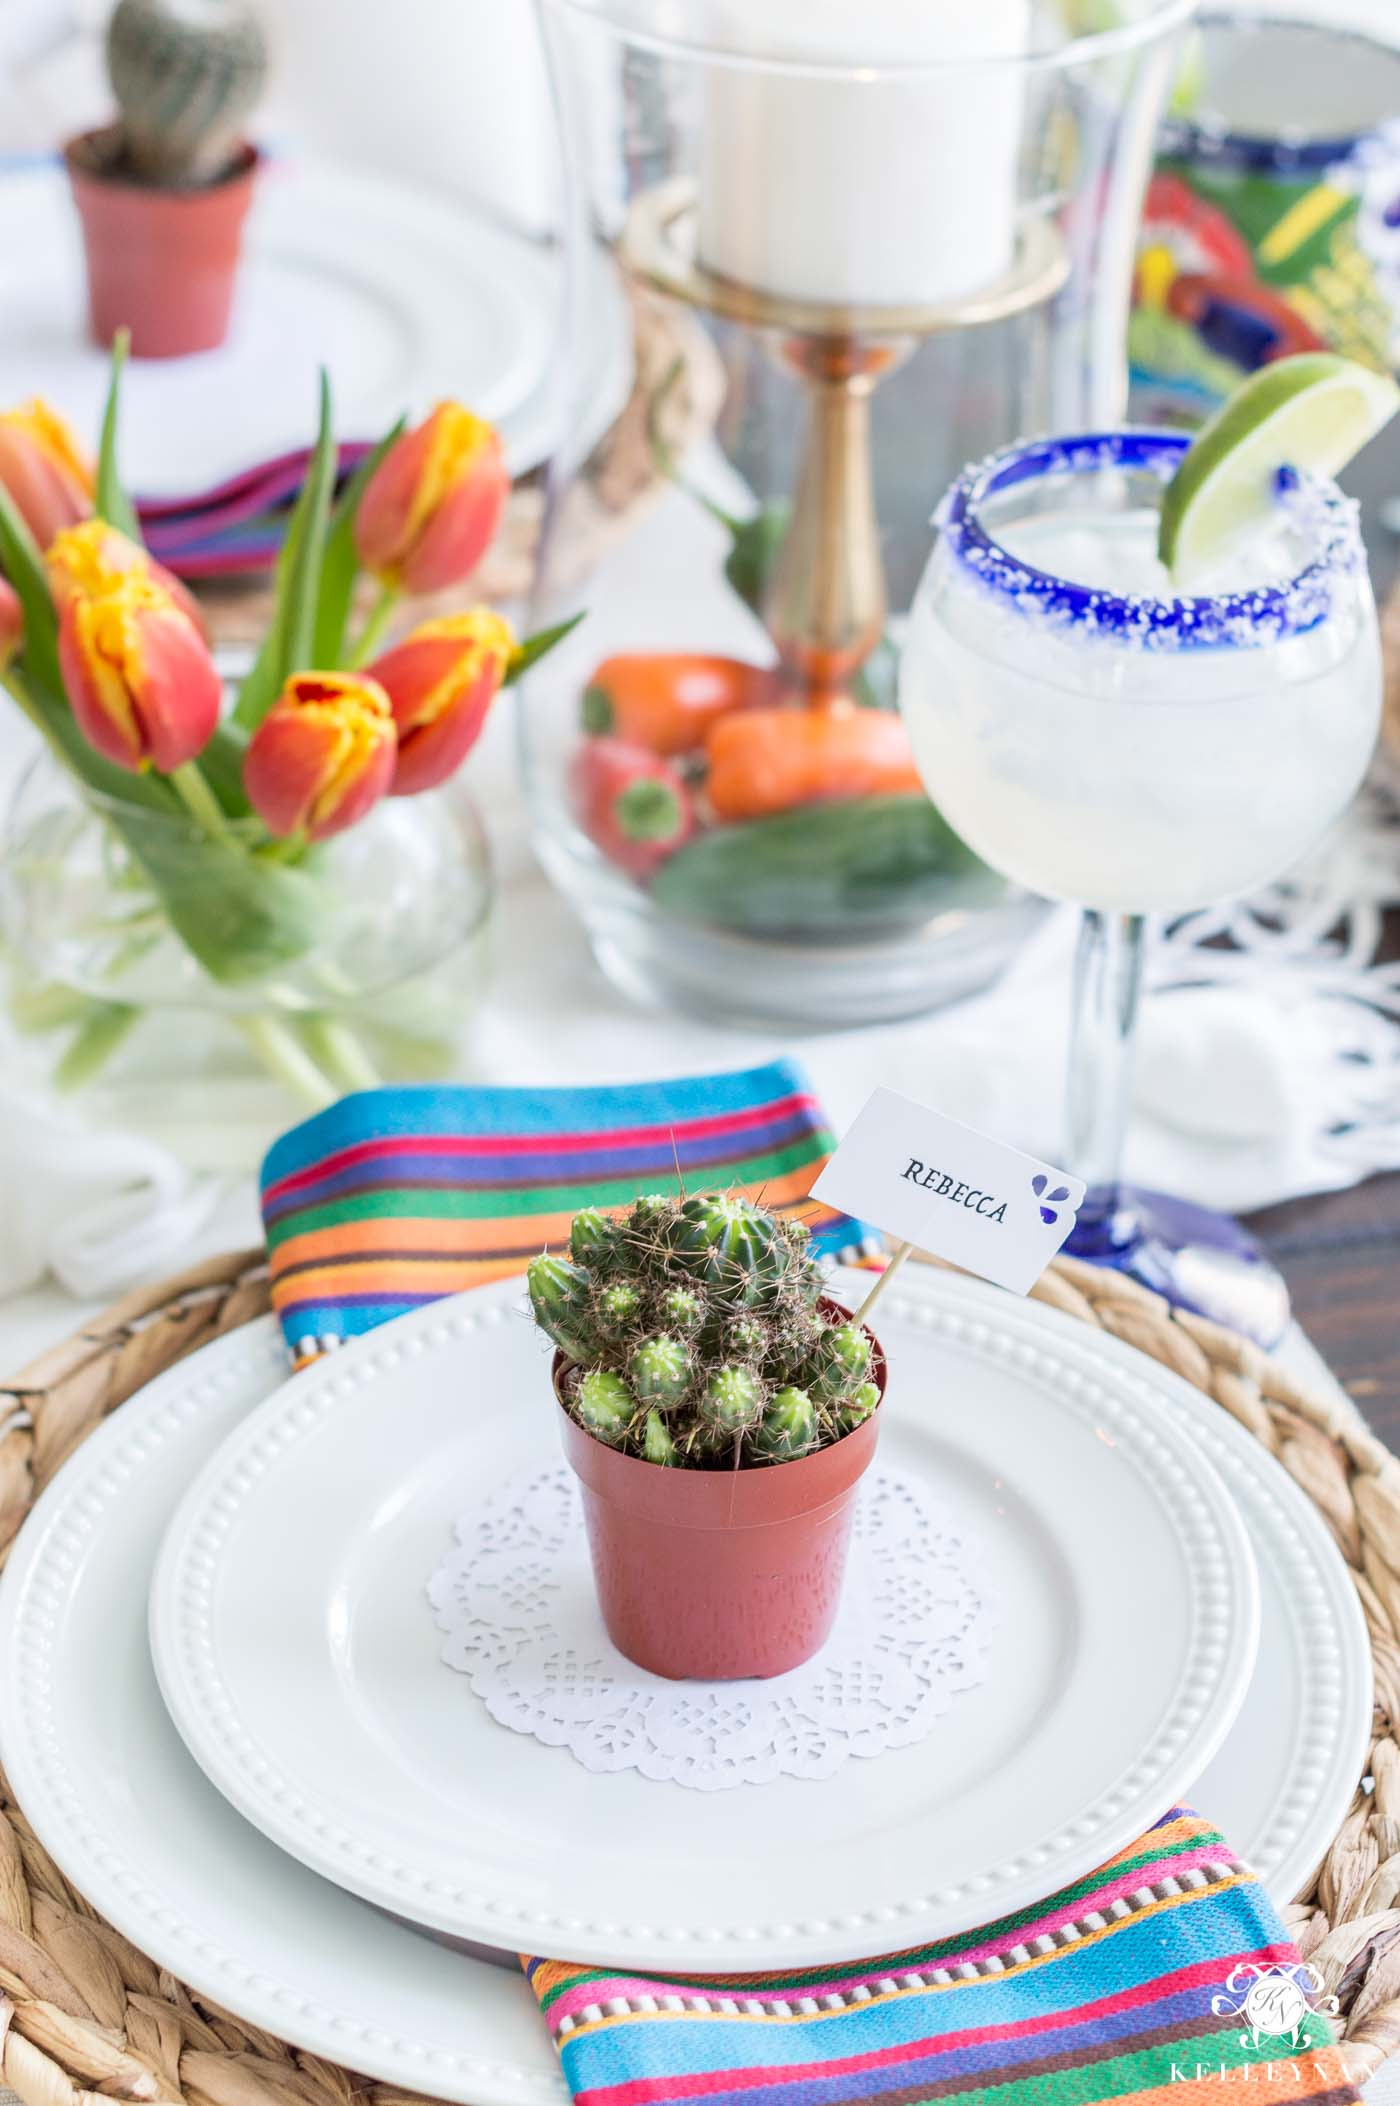 Mini cactus place setting centerpiece for Cinco de Mayo